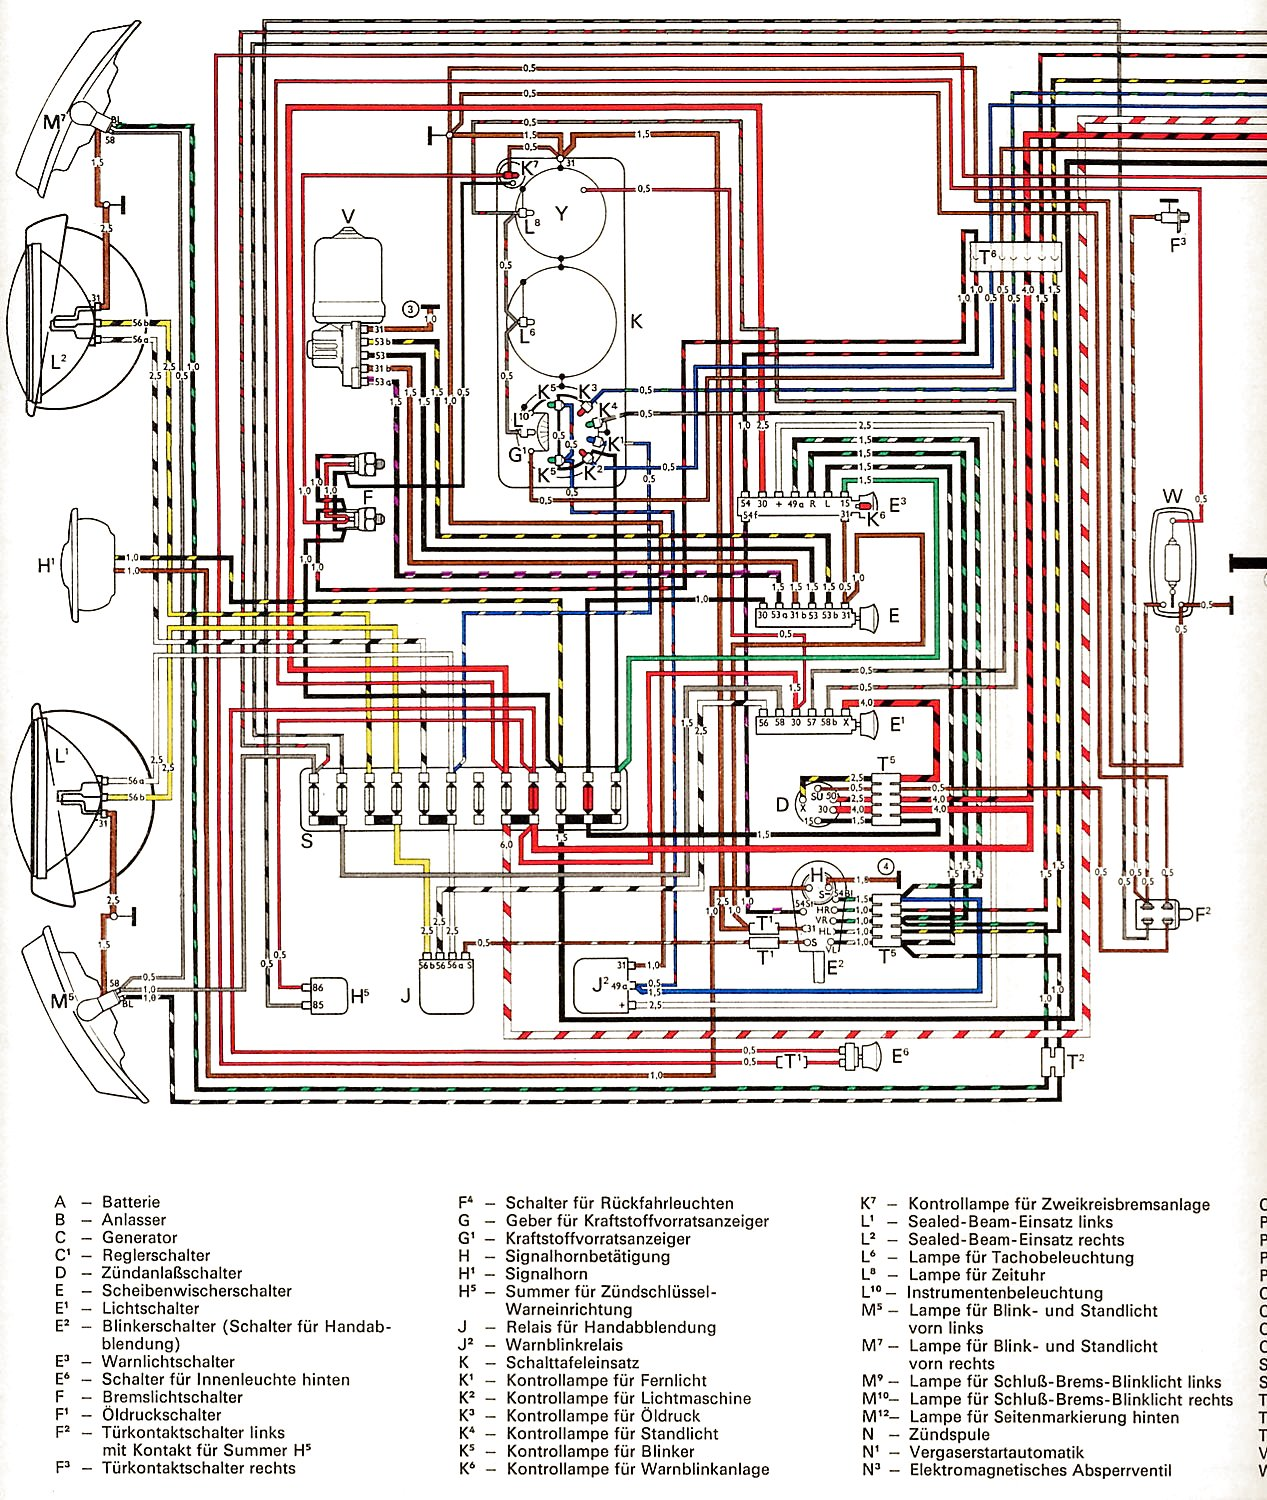 hight resolution of vintagebus com vw bus and other wiring diagrams rh vintagebus com 1974 vw alternator wiring diagram 1974 volkswagen beetle wiring diagram